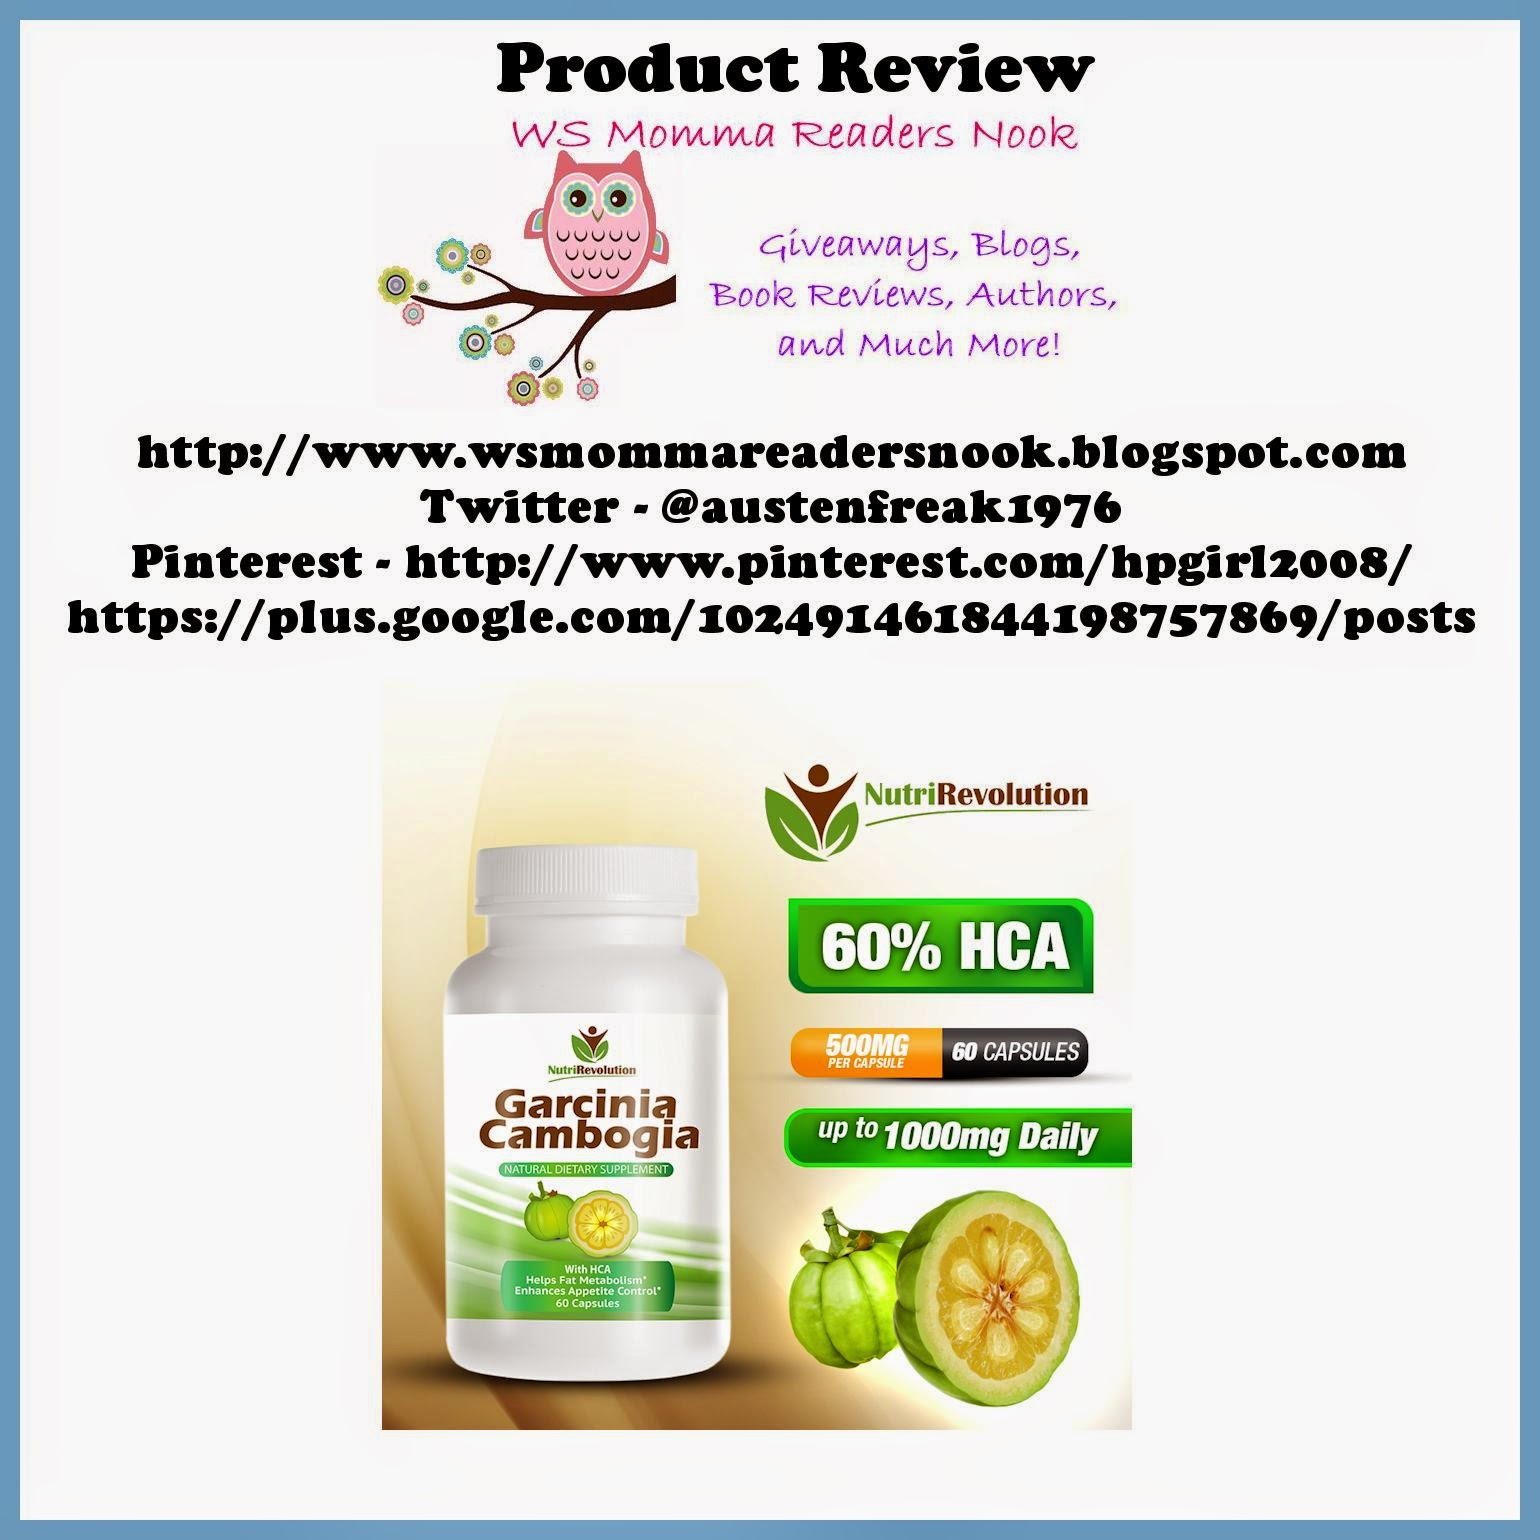 http://smile.amazon.com/nutrirevolution-pure-garcinia-cambogia-extract ...